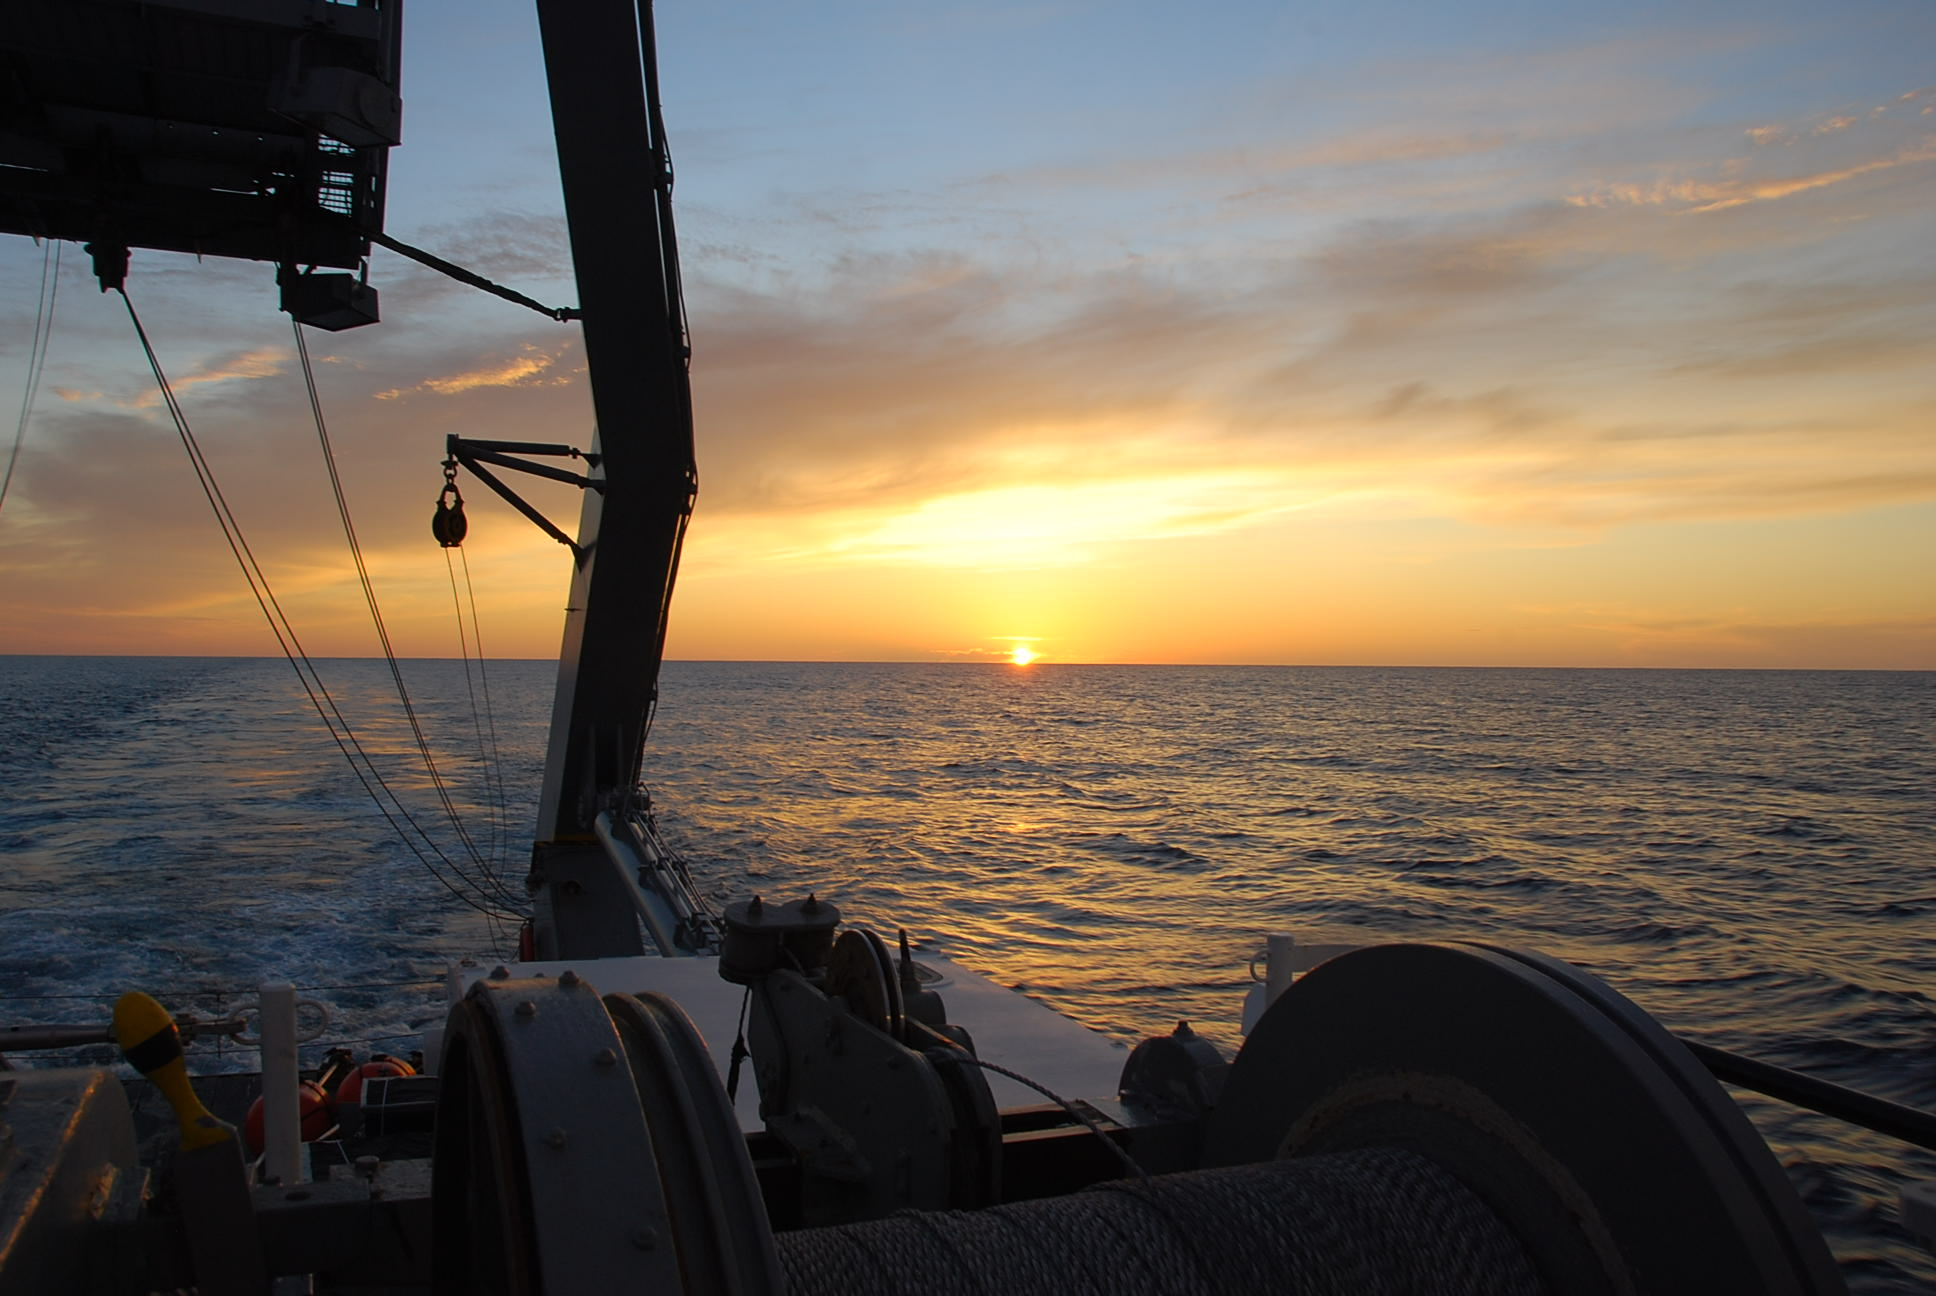 Role of the plankton community in the particle flux in the Sargasso Sea